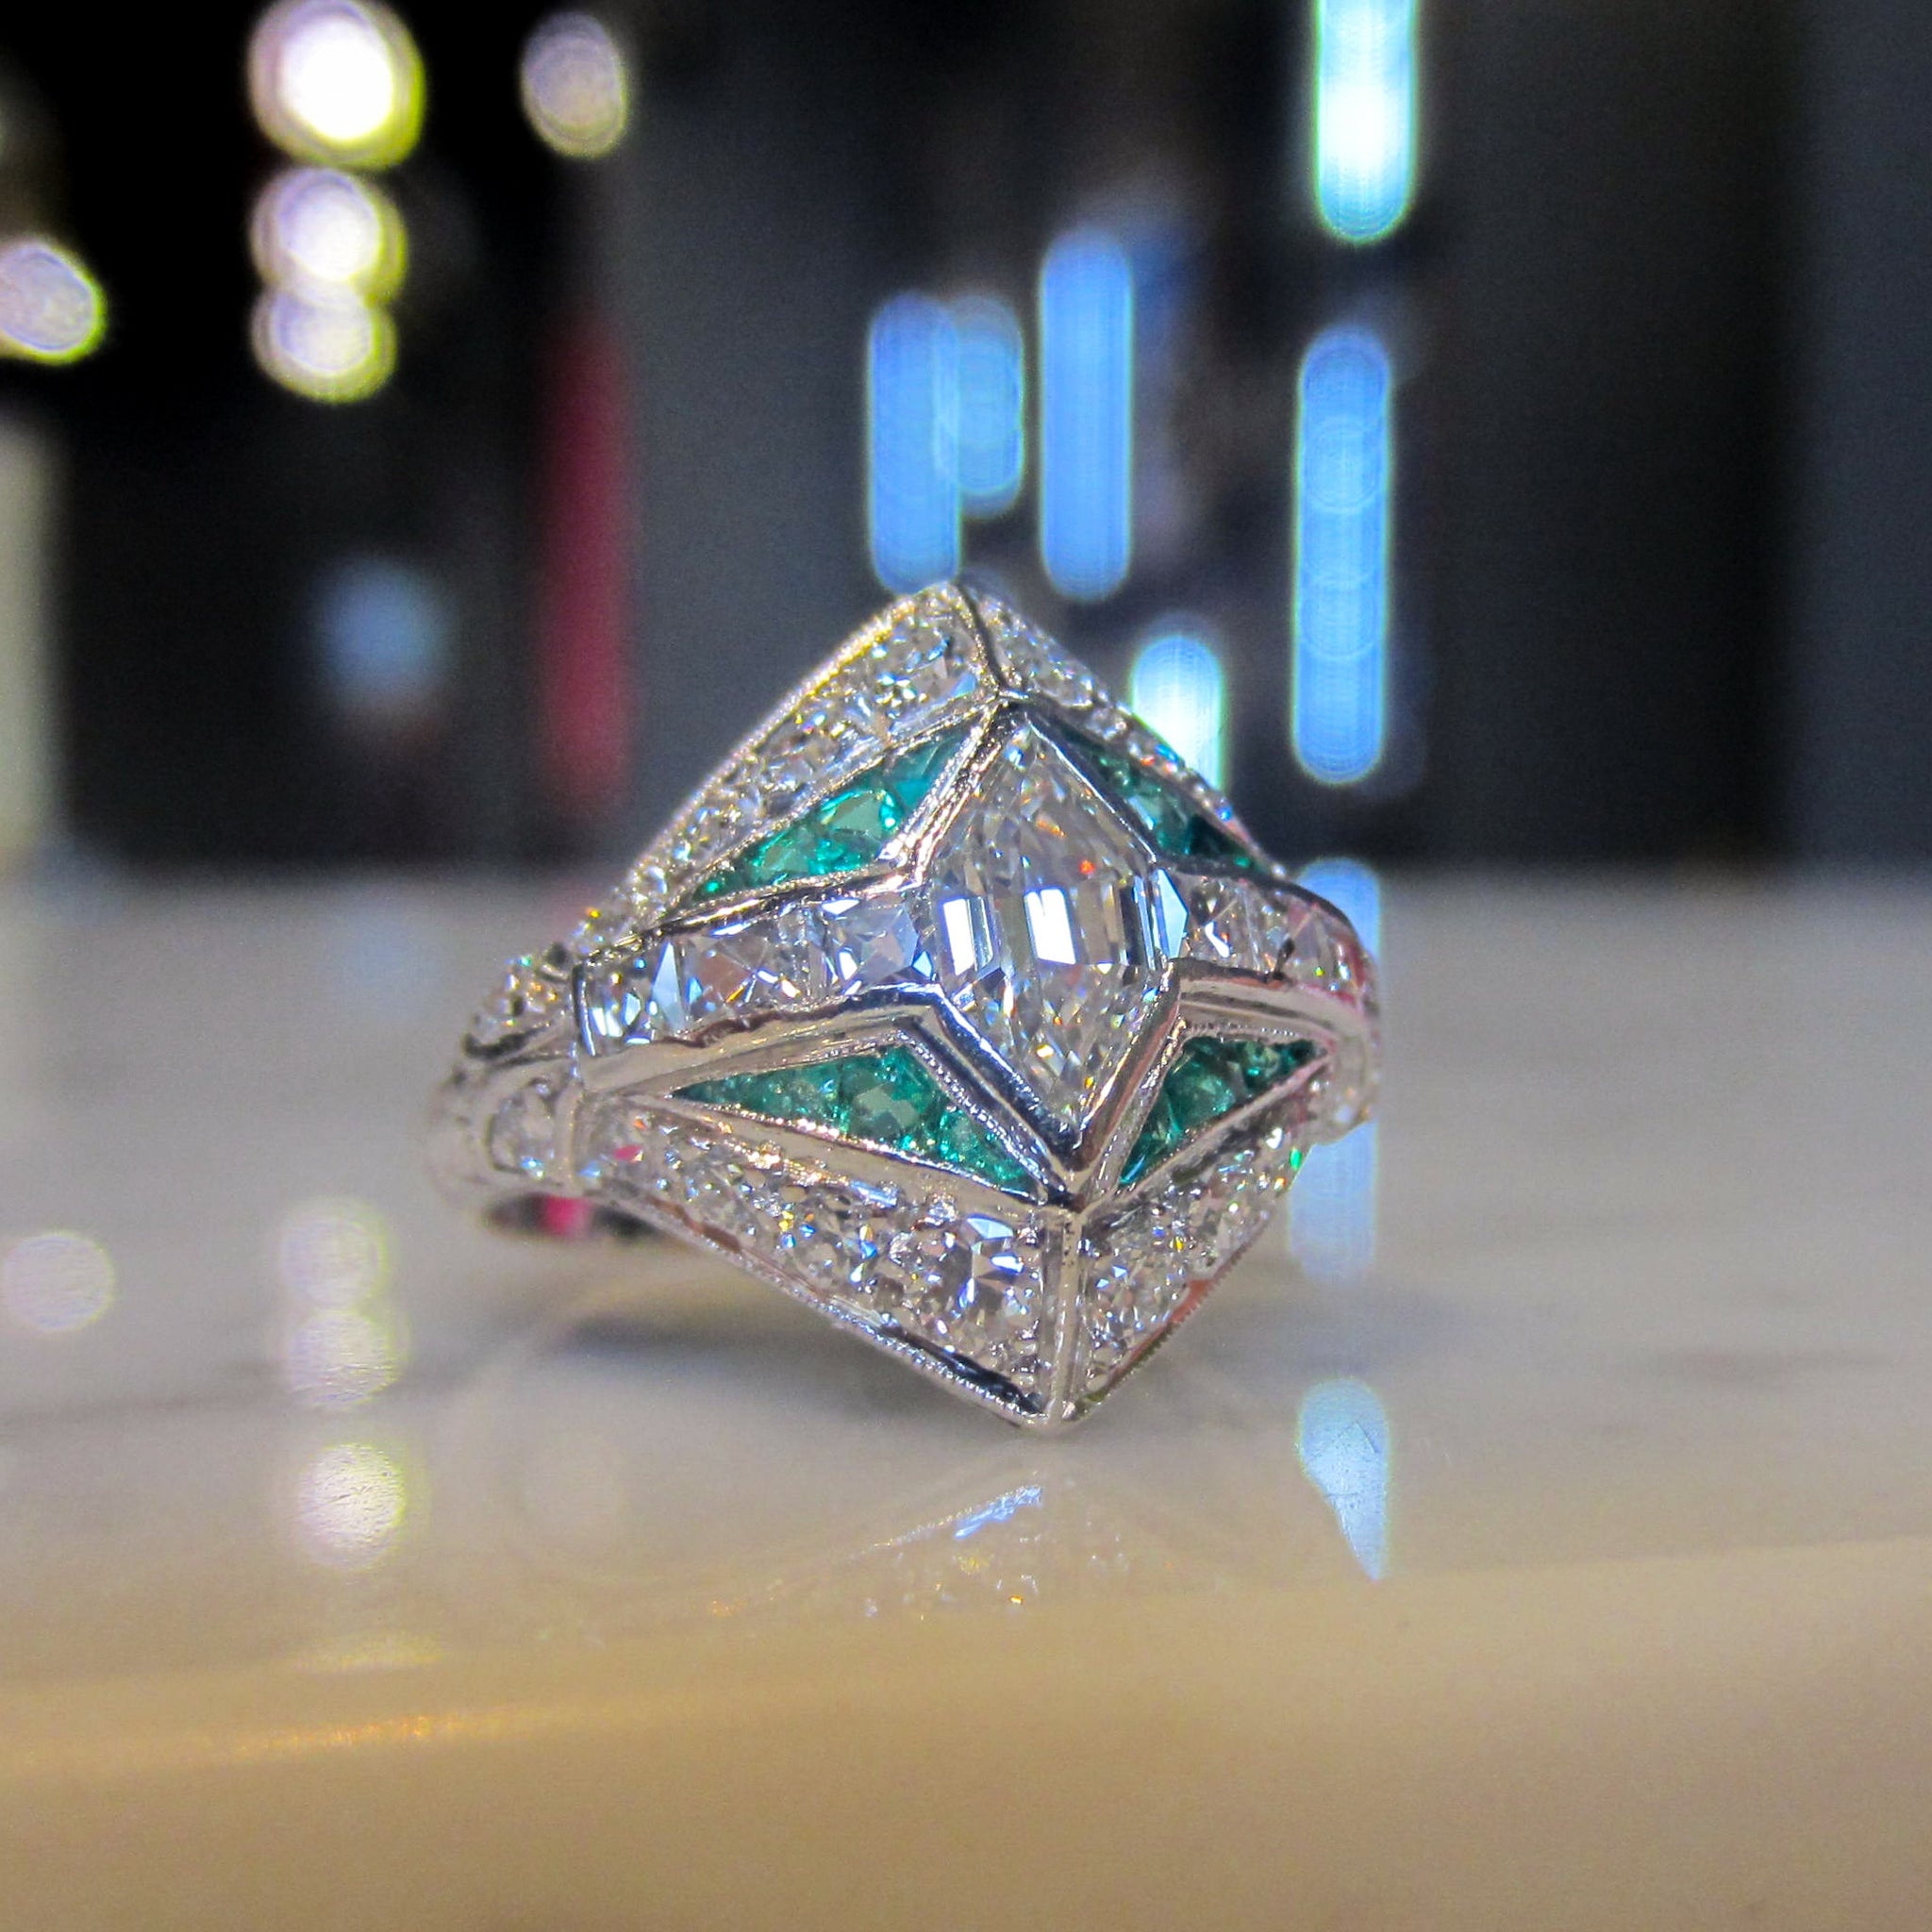 cameo wedding double halo diamond cut product phenomenal direct shoulder emerald ring engagement dealer